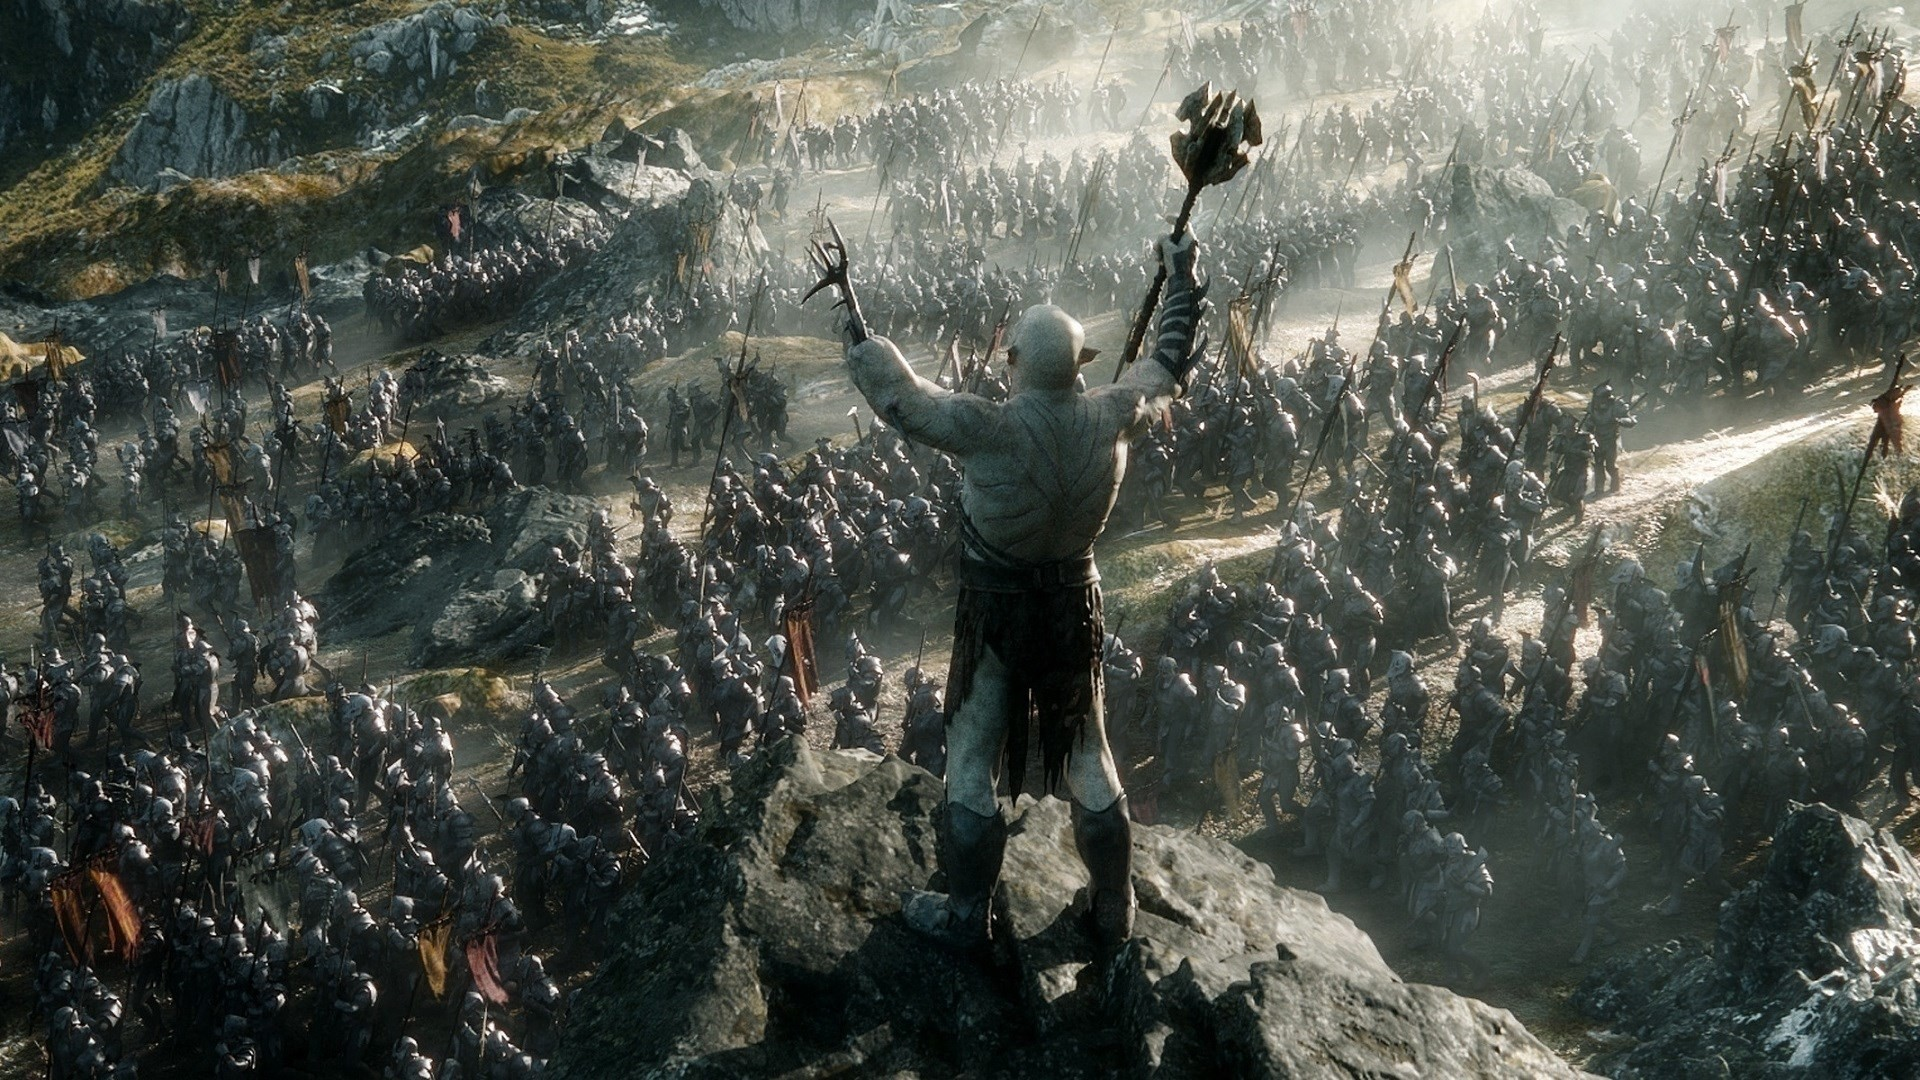 the hobbit the battle of the five armies wallpaper – Background hd (Jaylyn  Little